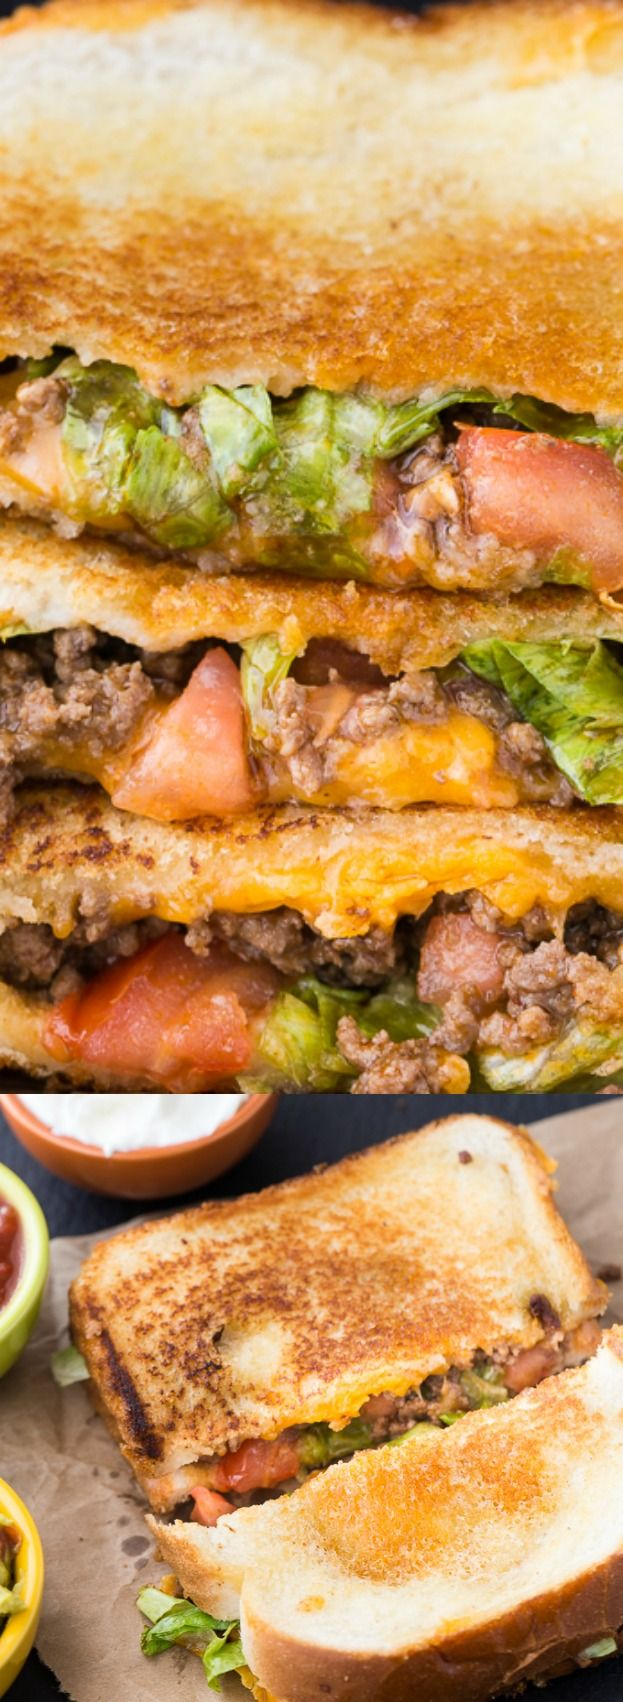 This Taco Grilled Cheese Sandwich recipe from Simply Stacie takes everything you love about tacos and combines it with the favorite classic! It's loaded with taco classics like seasoned ground beef, tomatoes, and lots of cheddar cheese!